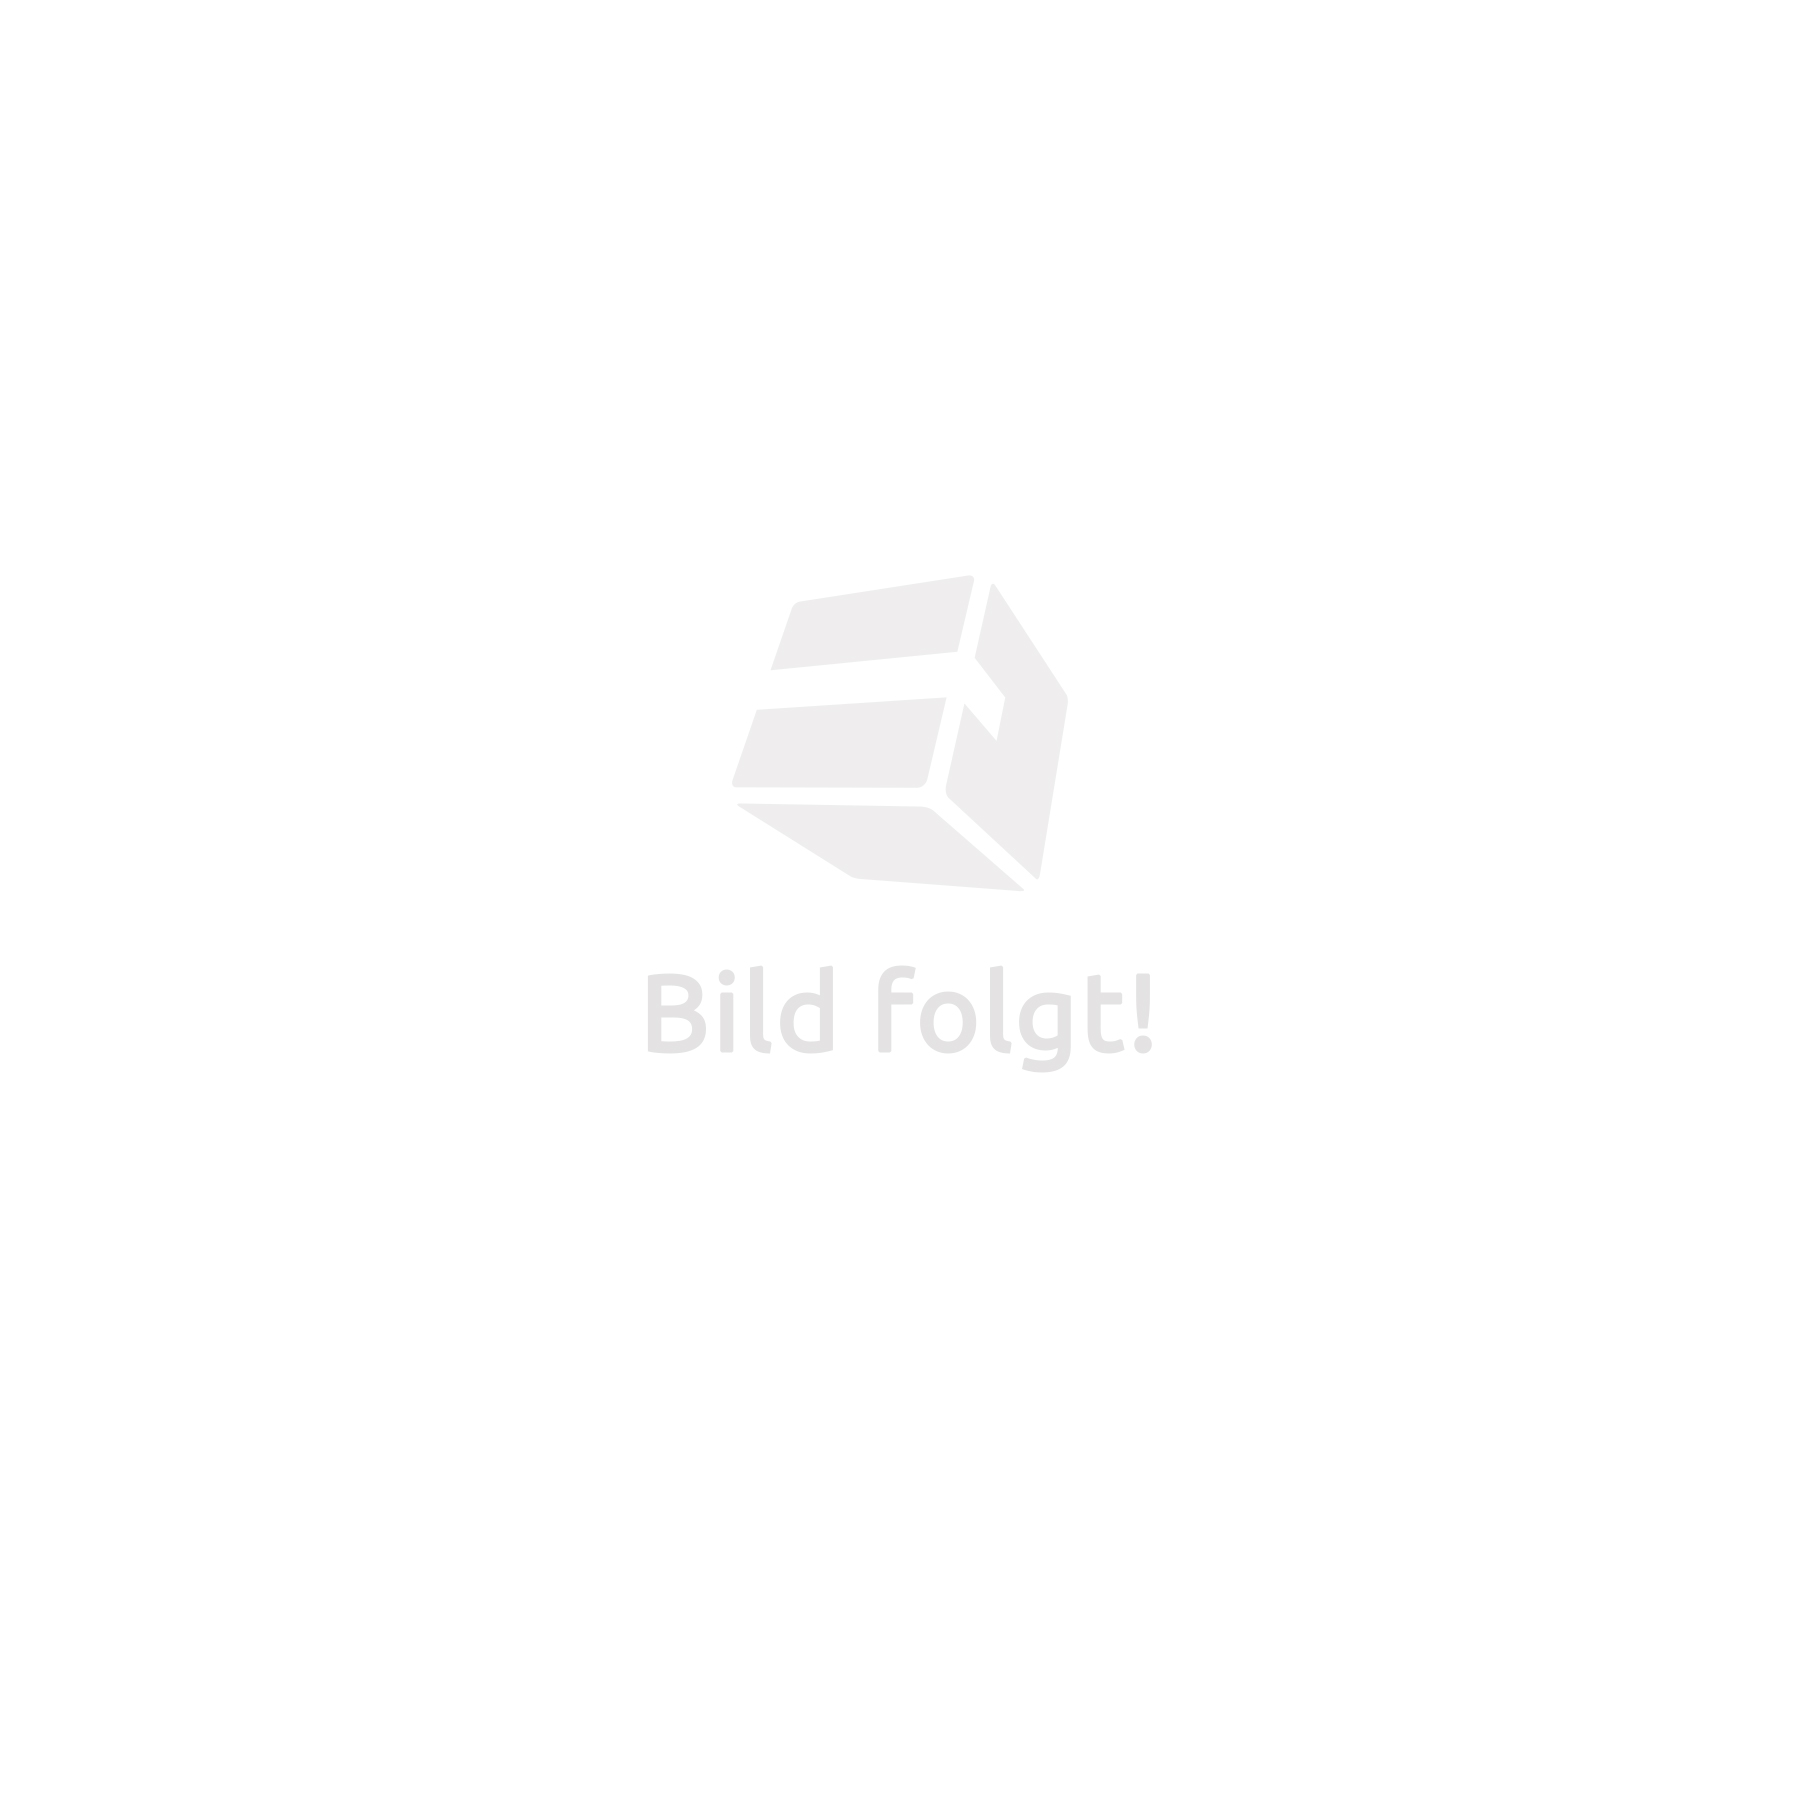 Table de massage Pliante 2 Zones 7,5 cm d'épaisseur beige